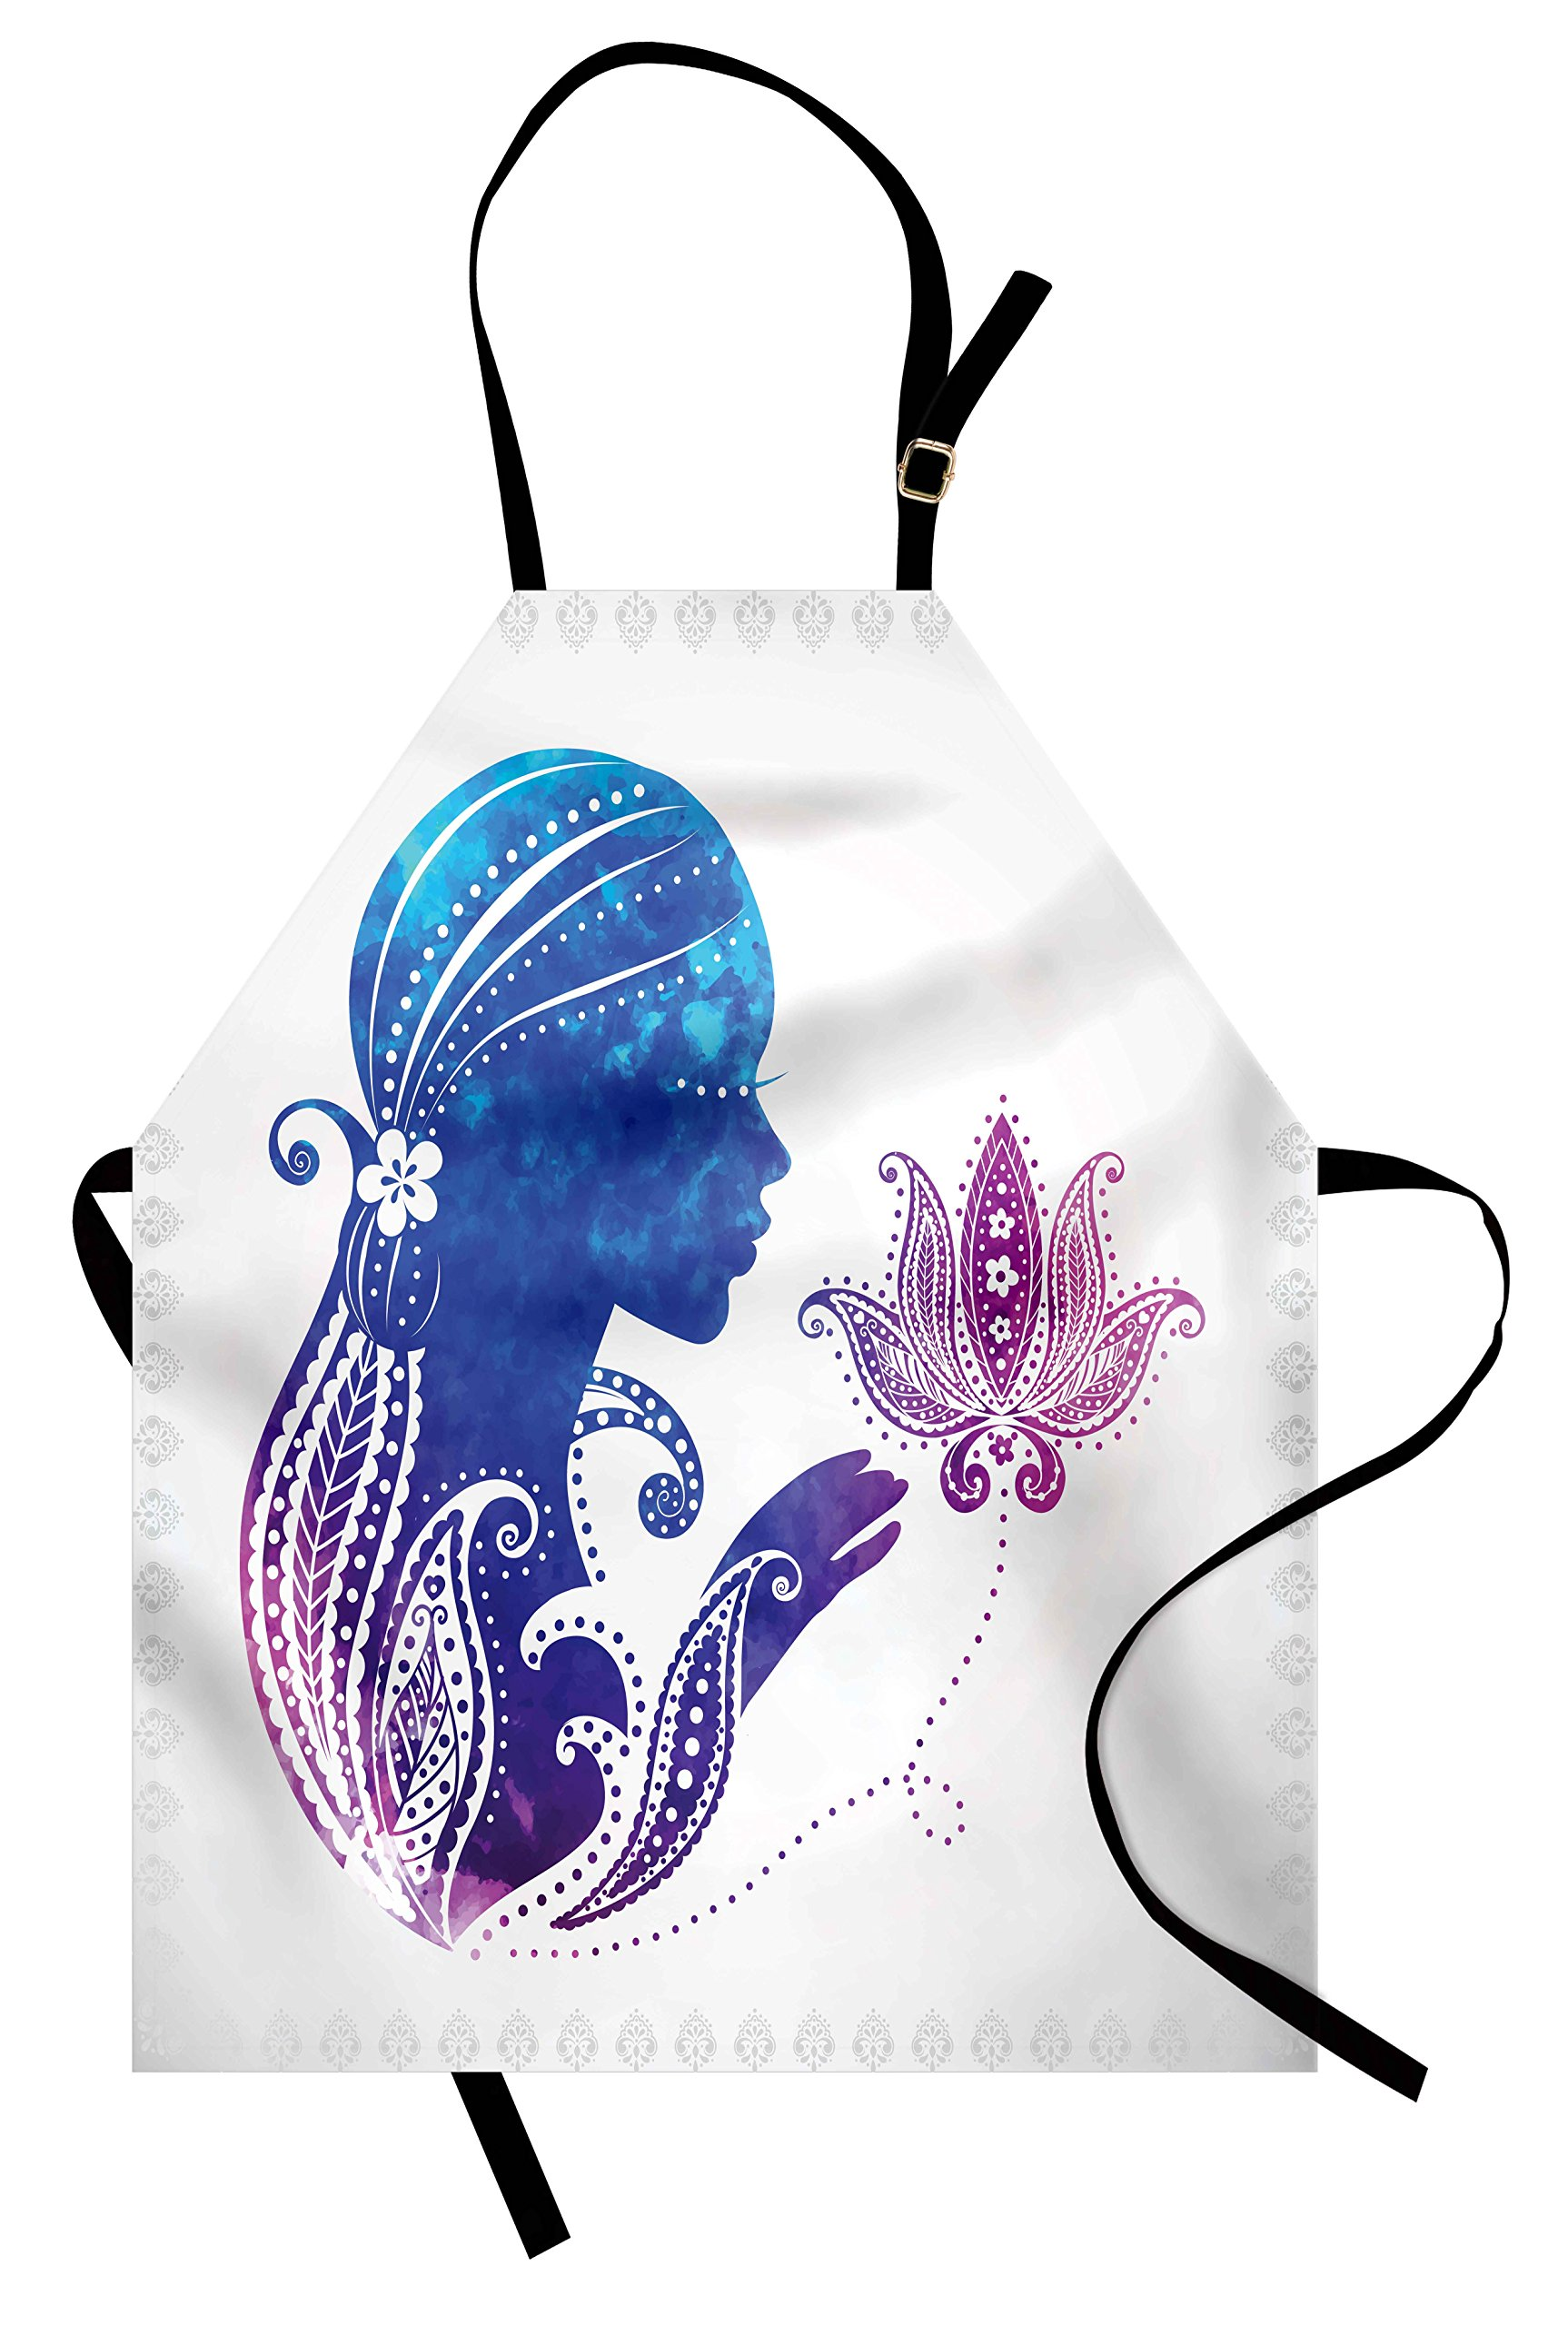 Ambesonne Teen Girls Apron, Girl's Silhouette with Flowers on Her Hair Floral Ornaments Meditation Spa Art, Unisex Kitchen Bib Apron with Adjustable Neck for Cooking Baking Gardening, Purple Blue by Ambesonne (Image #1)